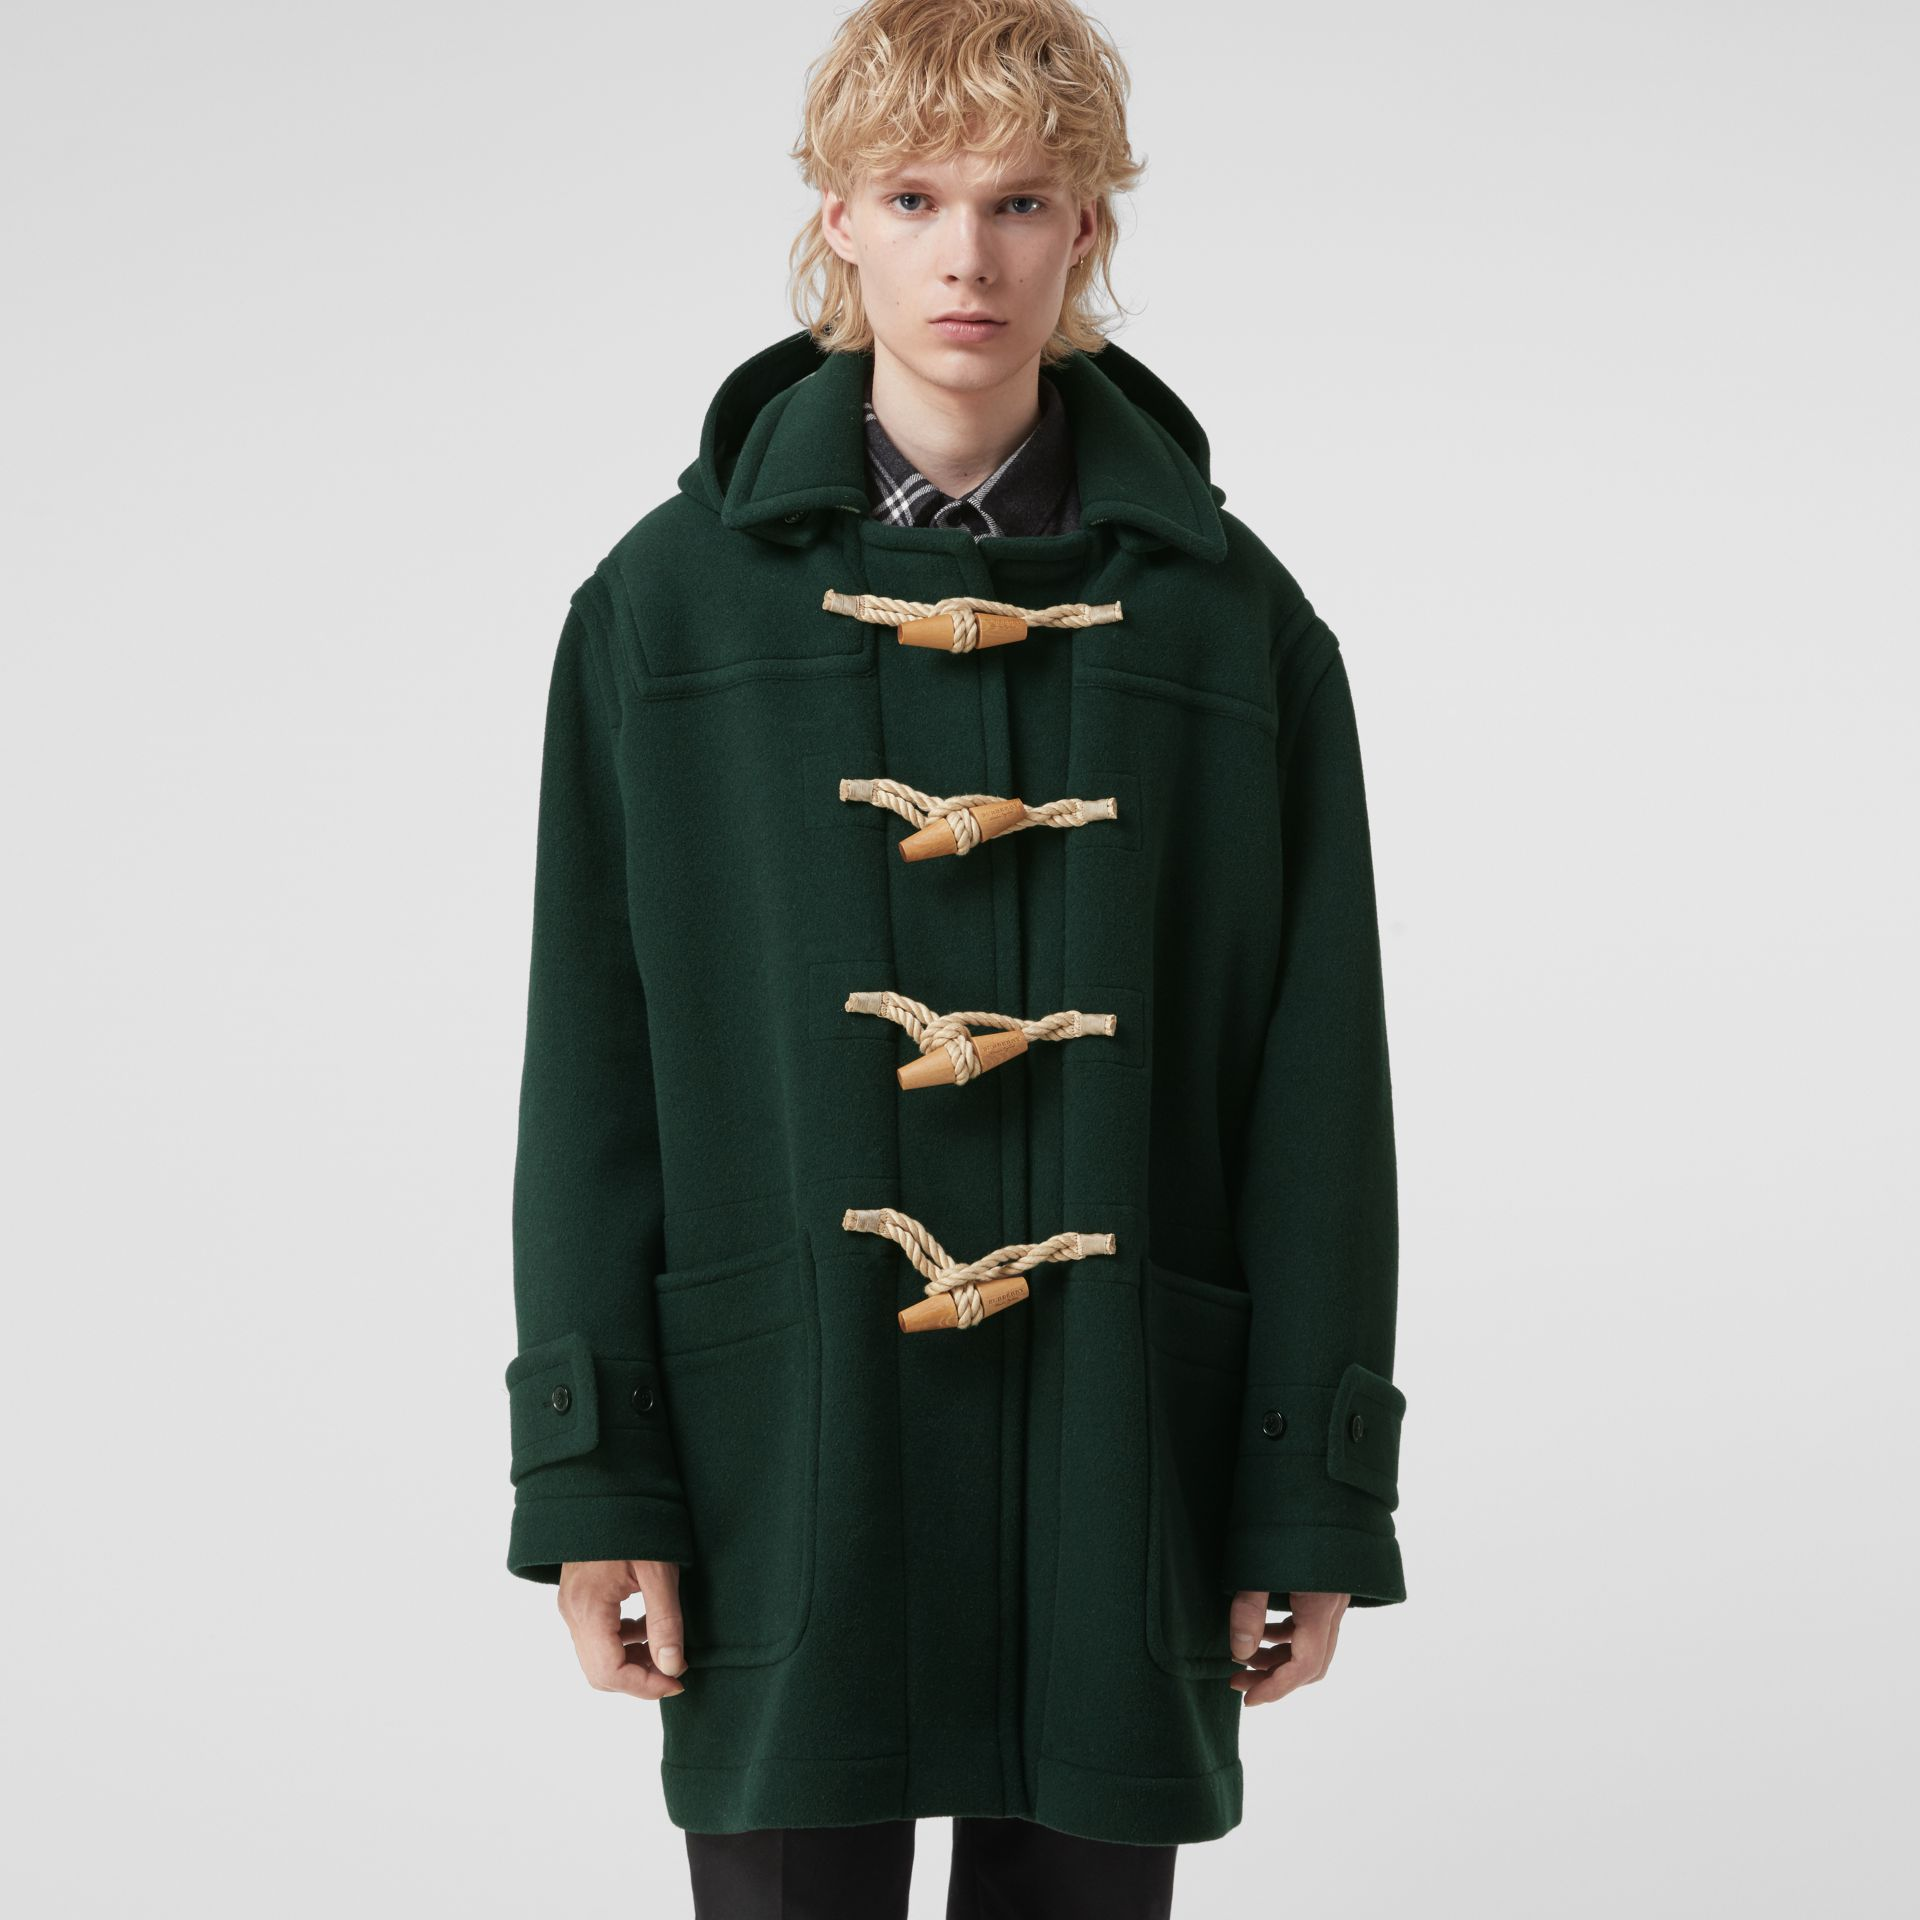 Gosha x Burberry Oversized Duffle Coat in Dark Forest Green | Burberry United Kingdom - gallery image 6